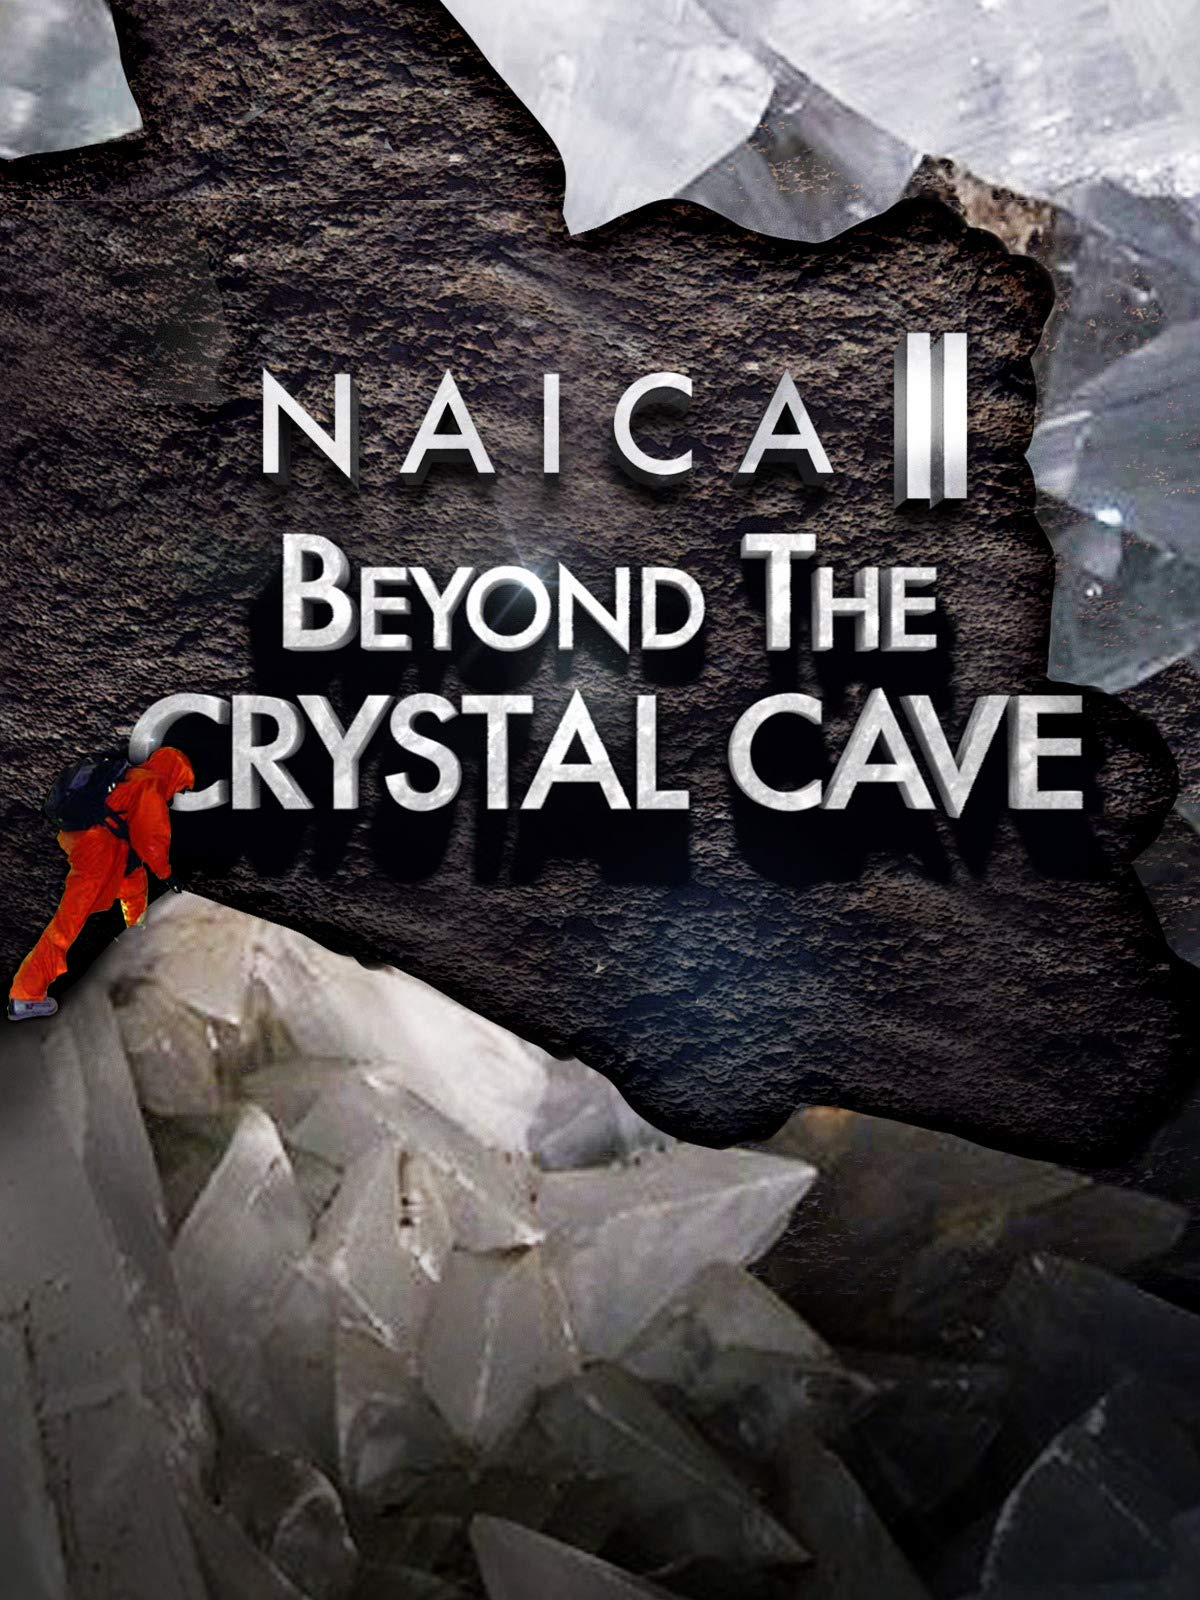 NAICA 2: Beyond the Crystal Cave